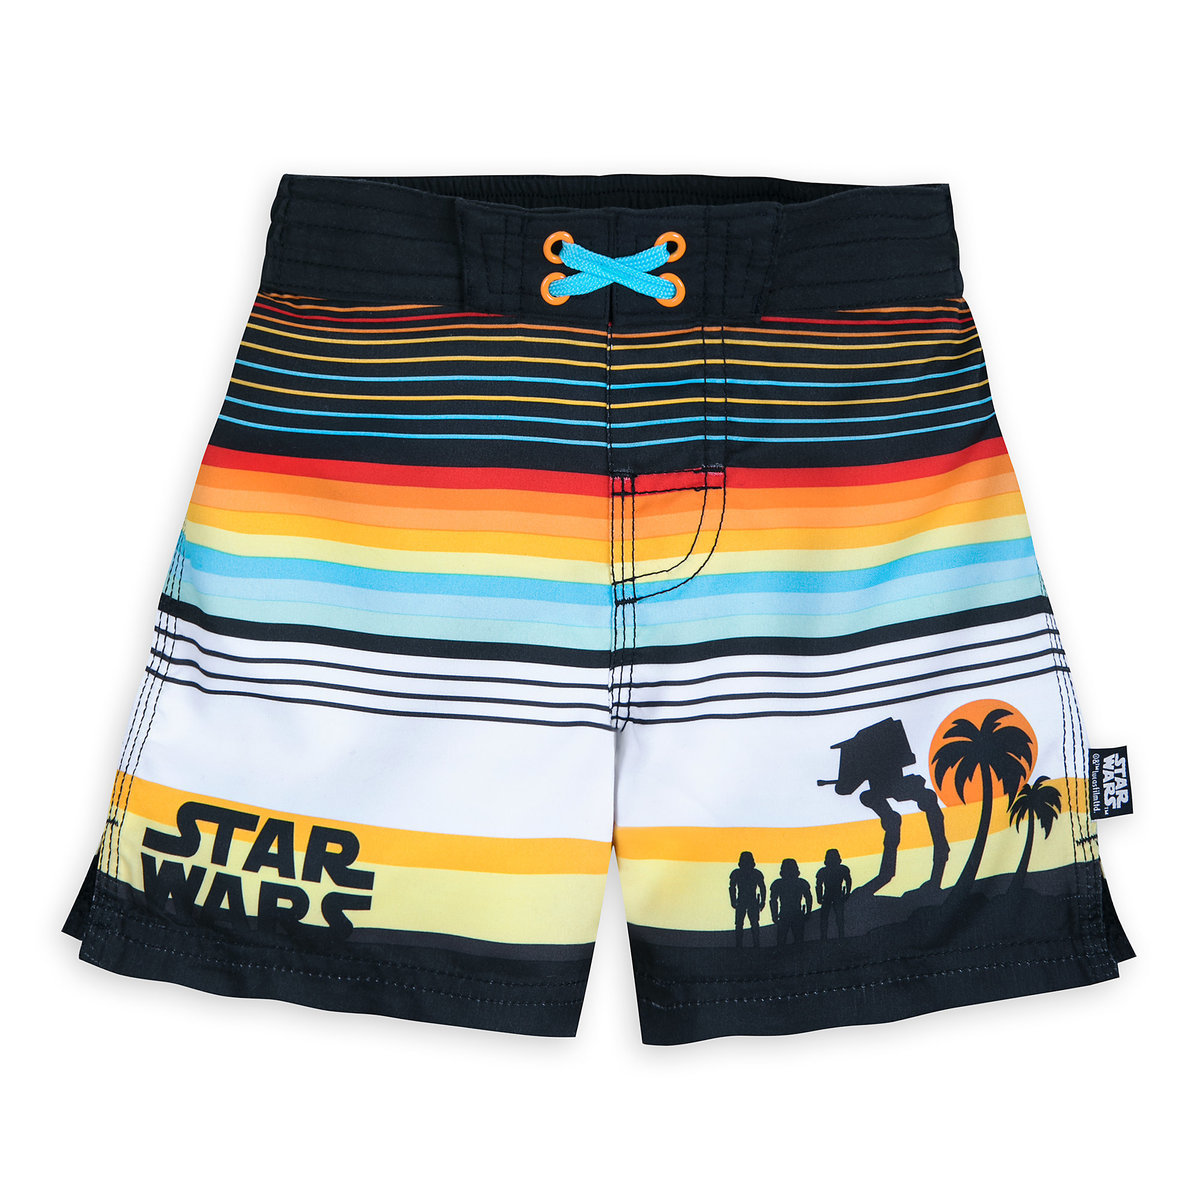 0643d19cf0091 Product Image of Star Wars Swim Trunks for Boys # 1